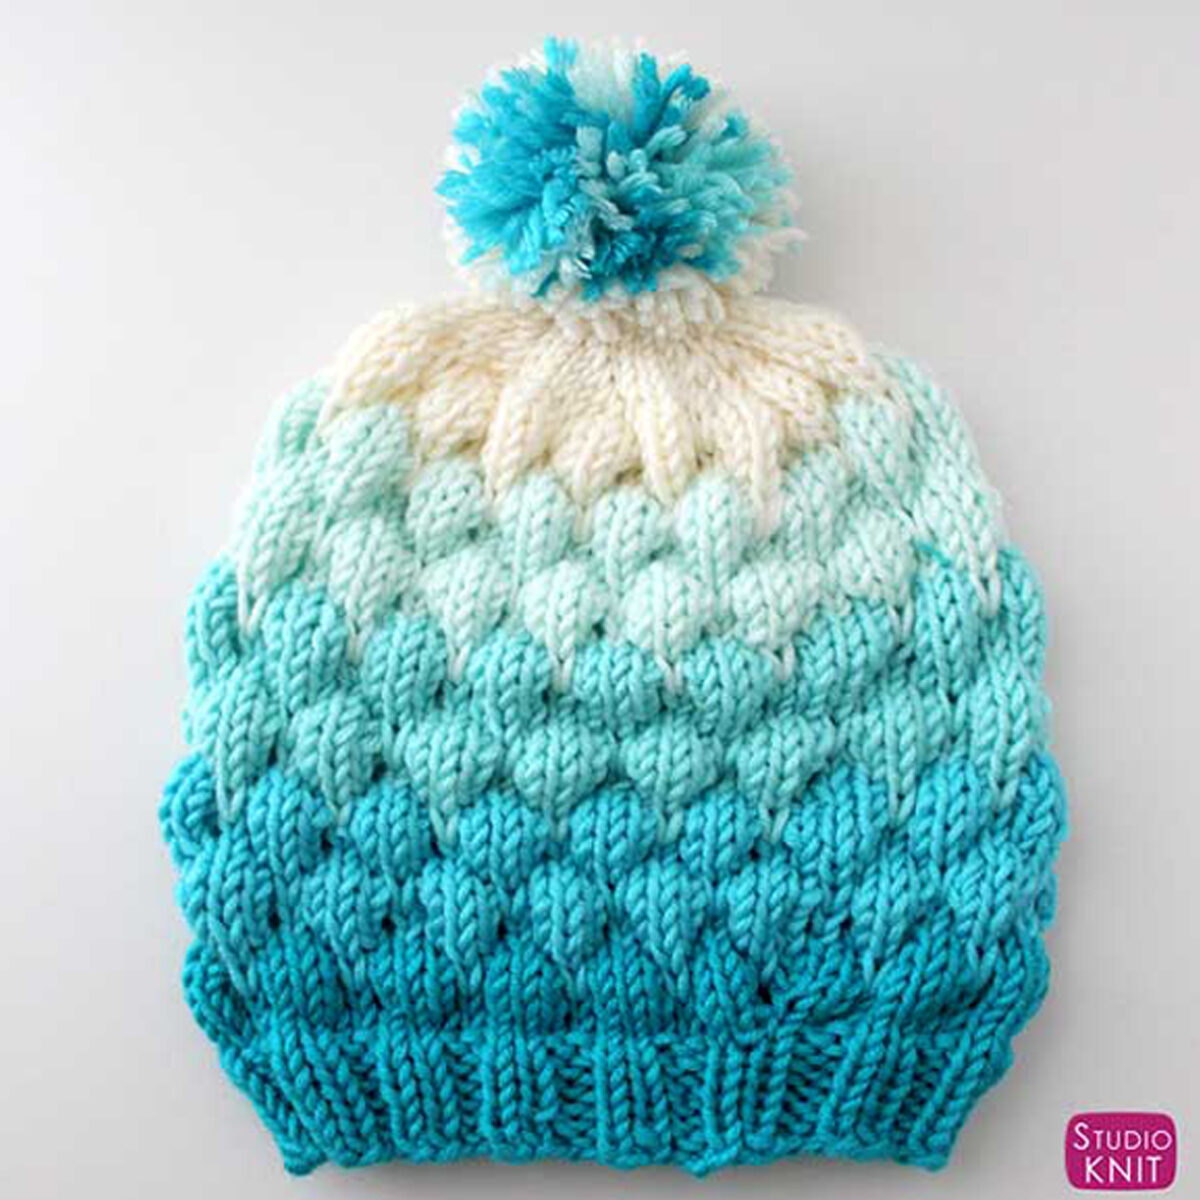 Knitted Bubble Beanie Hat in shades of blue yarn color with pom pom.